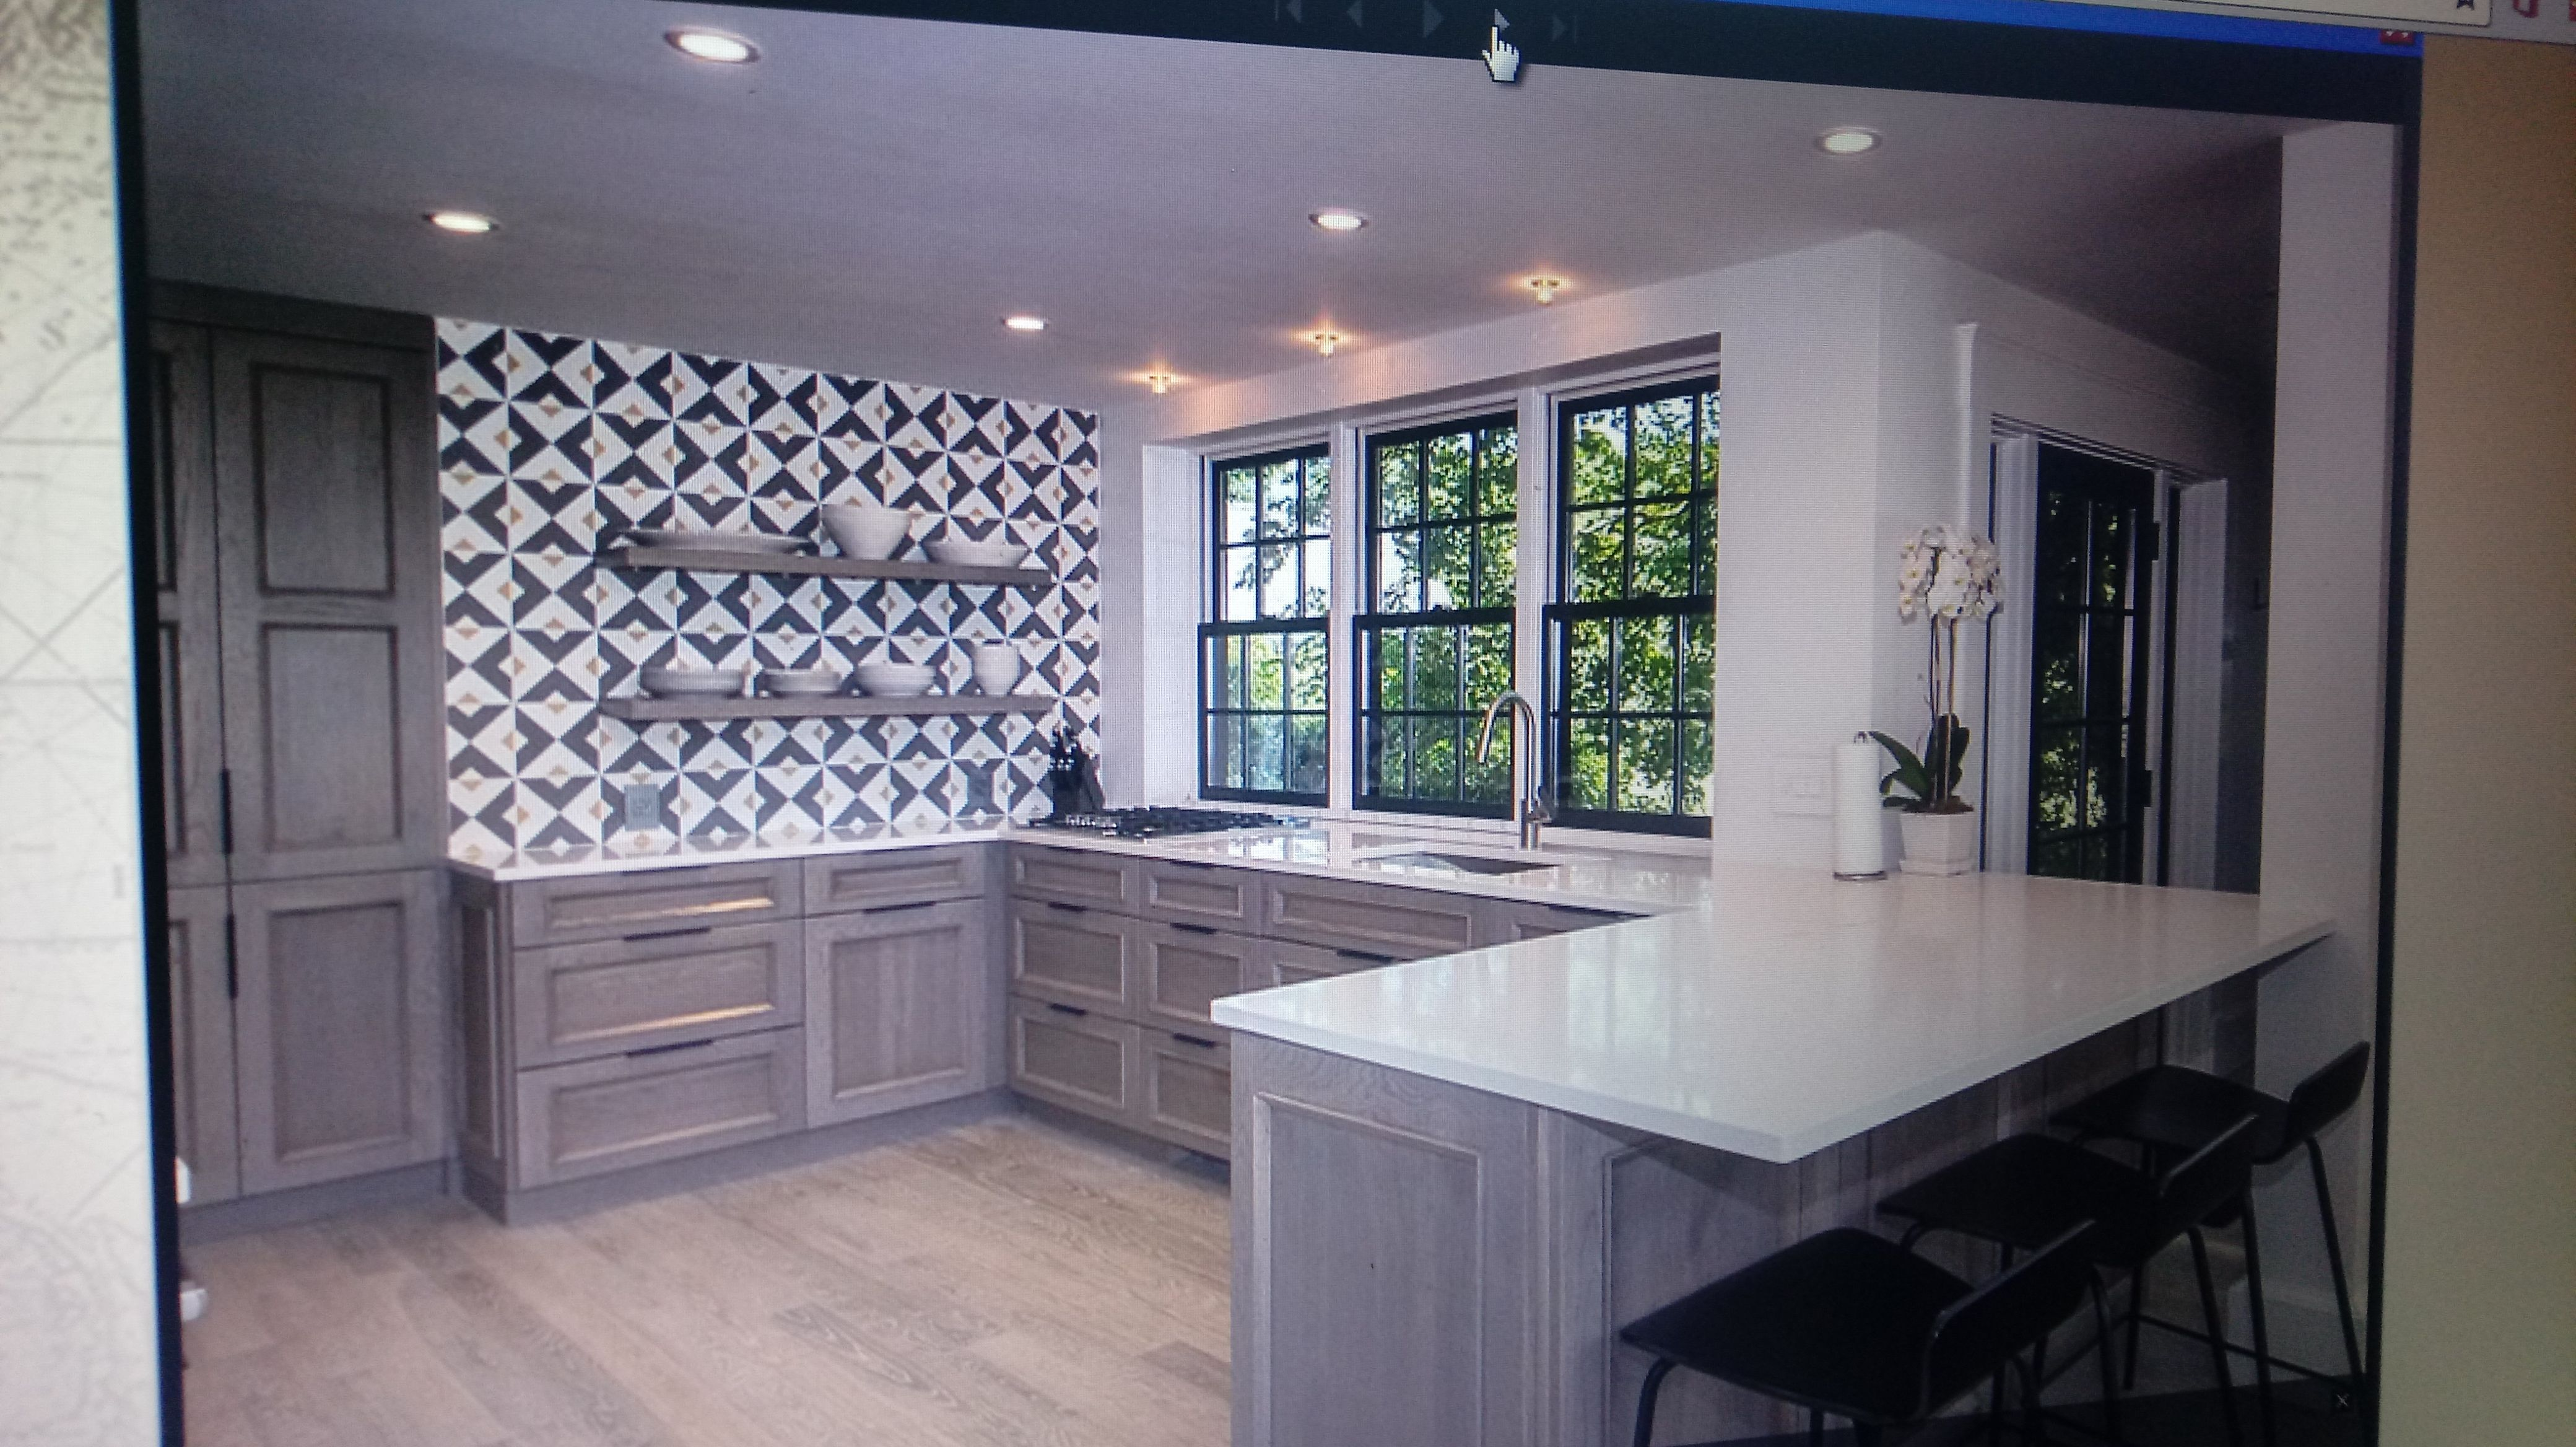 Cucina The Kitchen Company Equilibrium Beverly Ma Architect Keith Musinski Cabinetry